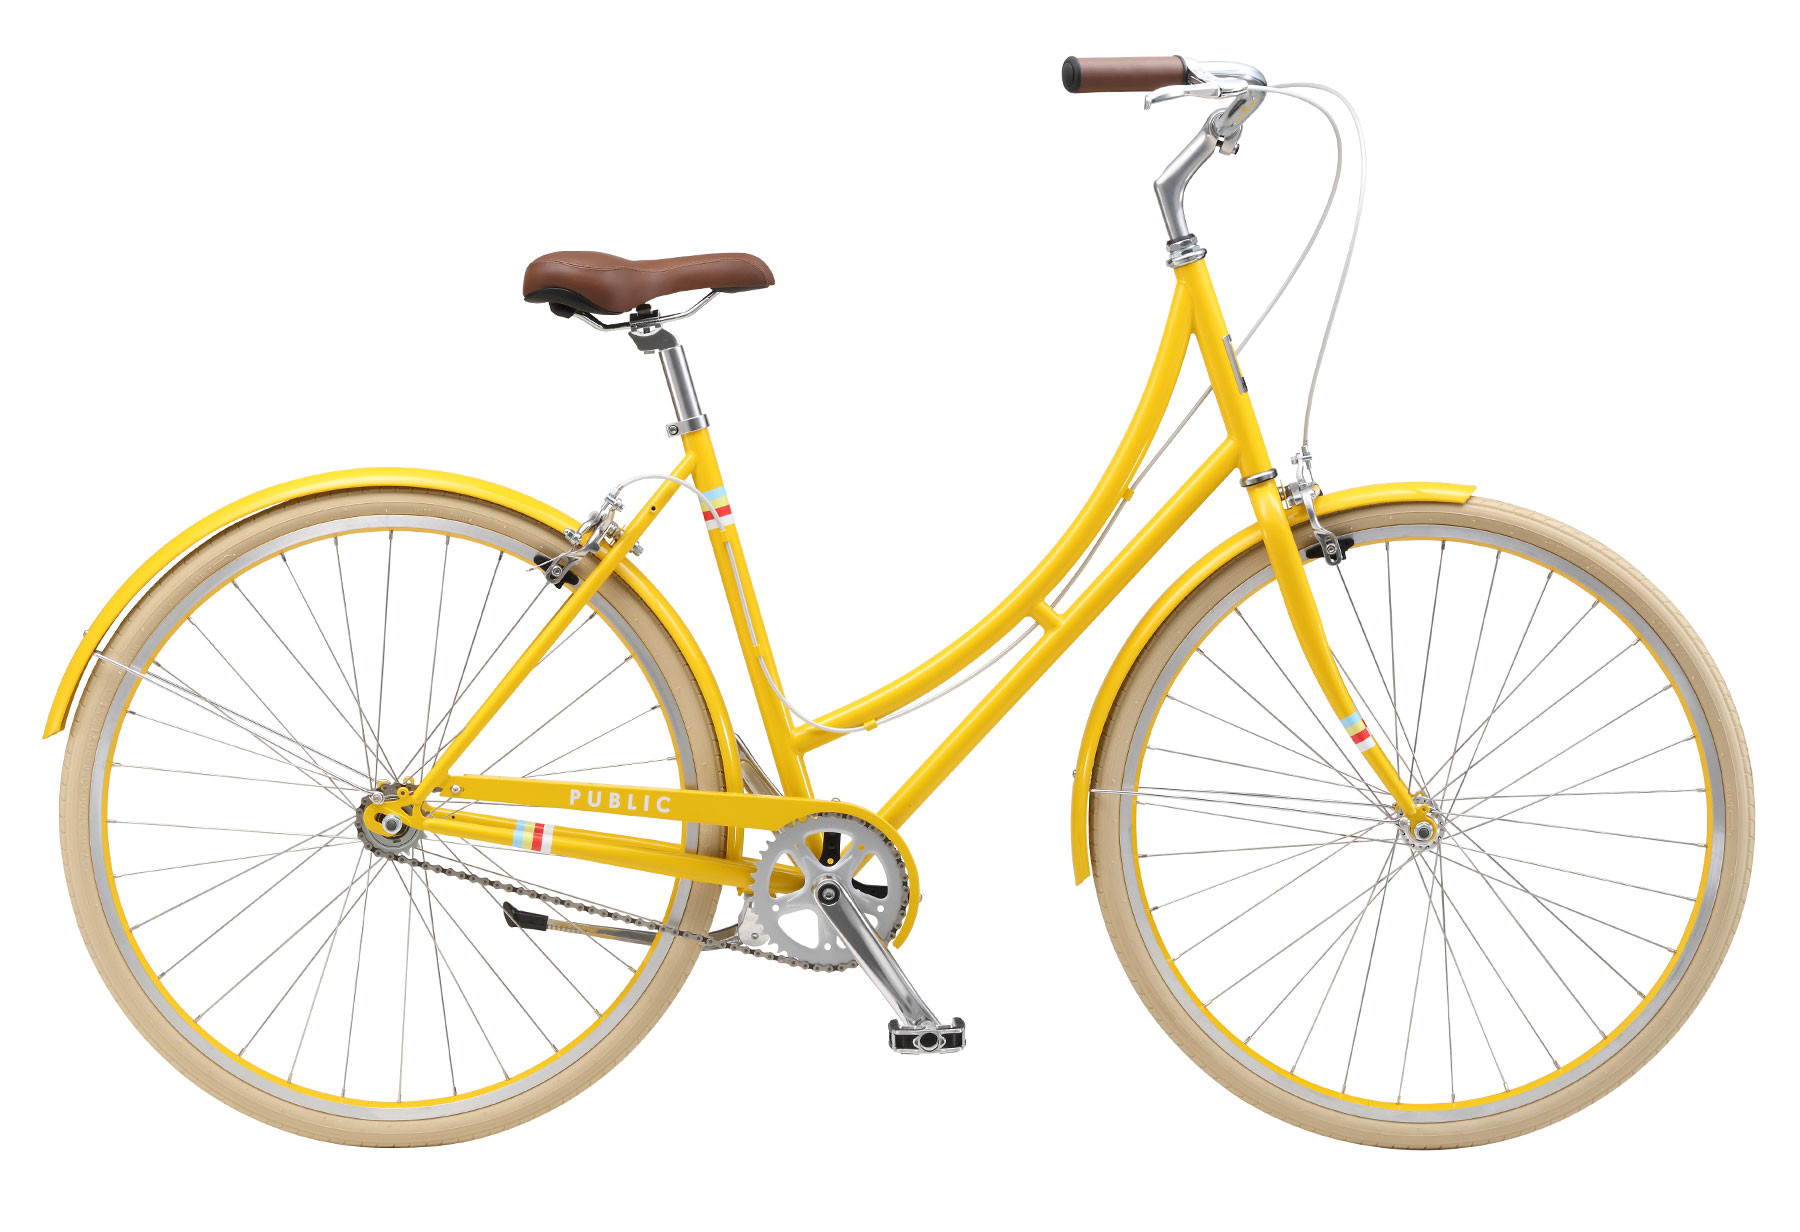 51001_bike_Saffron_010-PUBLIC-C1-2015-Singlespeed-Stepthrough-Dutch-Style-Bike.jpg